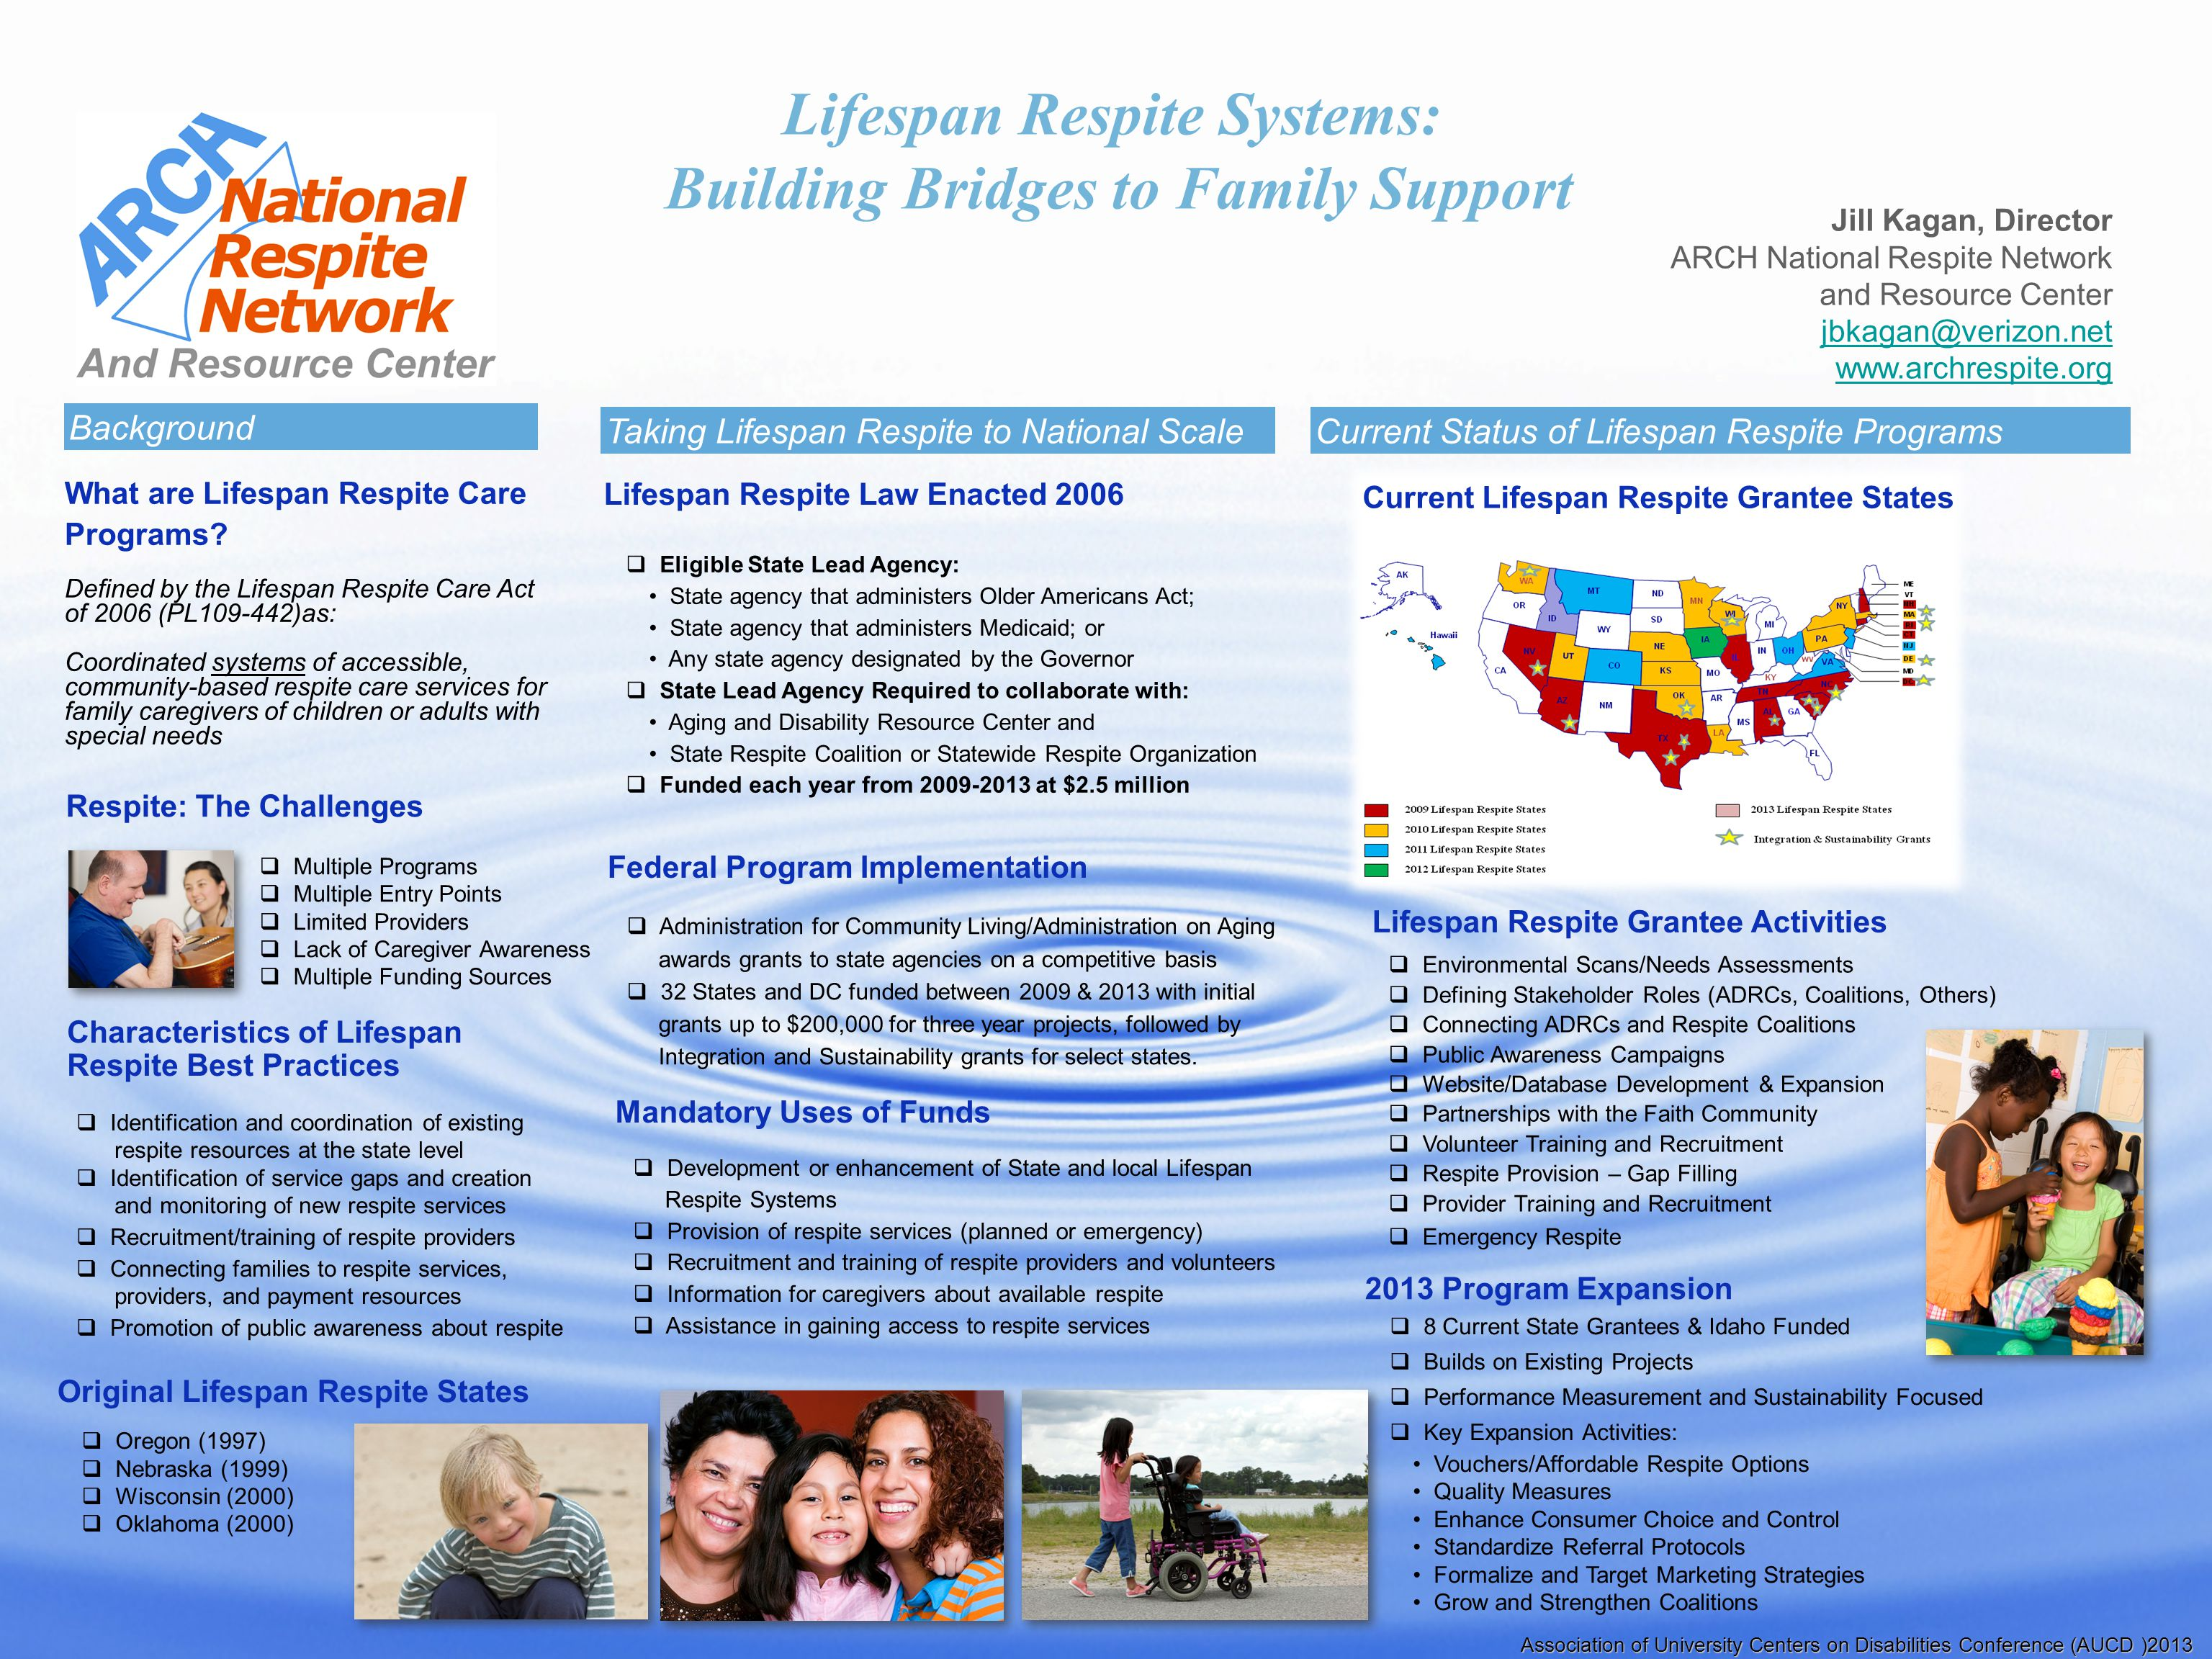 Lifespan Respite Systems: Building Bridges to Family Support Jill Kagan, Director ARCH National Respite Network and Resource Center jbkagan@verizon.net www.archrespite.org Respite: The Challenges  Multiple Programs  Multiple Entry Points  Limited Providers  Lack of Caregiver Awareness  Multiple Funding Sources Association of University Centers on Disabilities Conference (AUCD )2013 What are Lifespan Respite Care Programs.